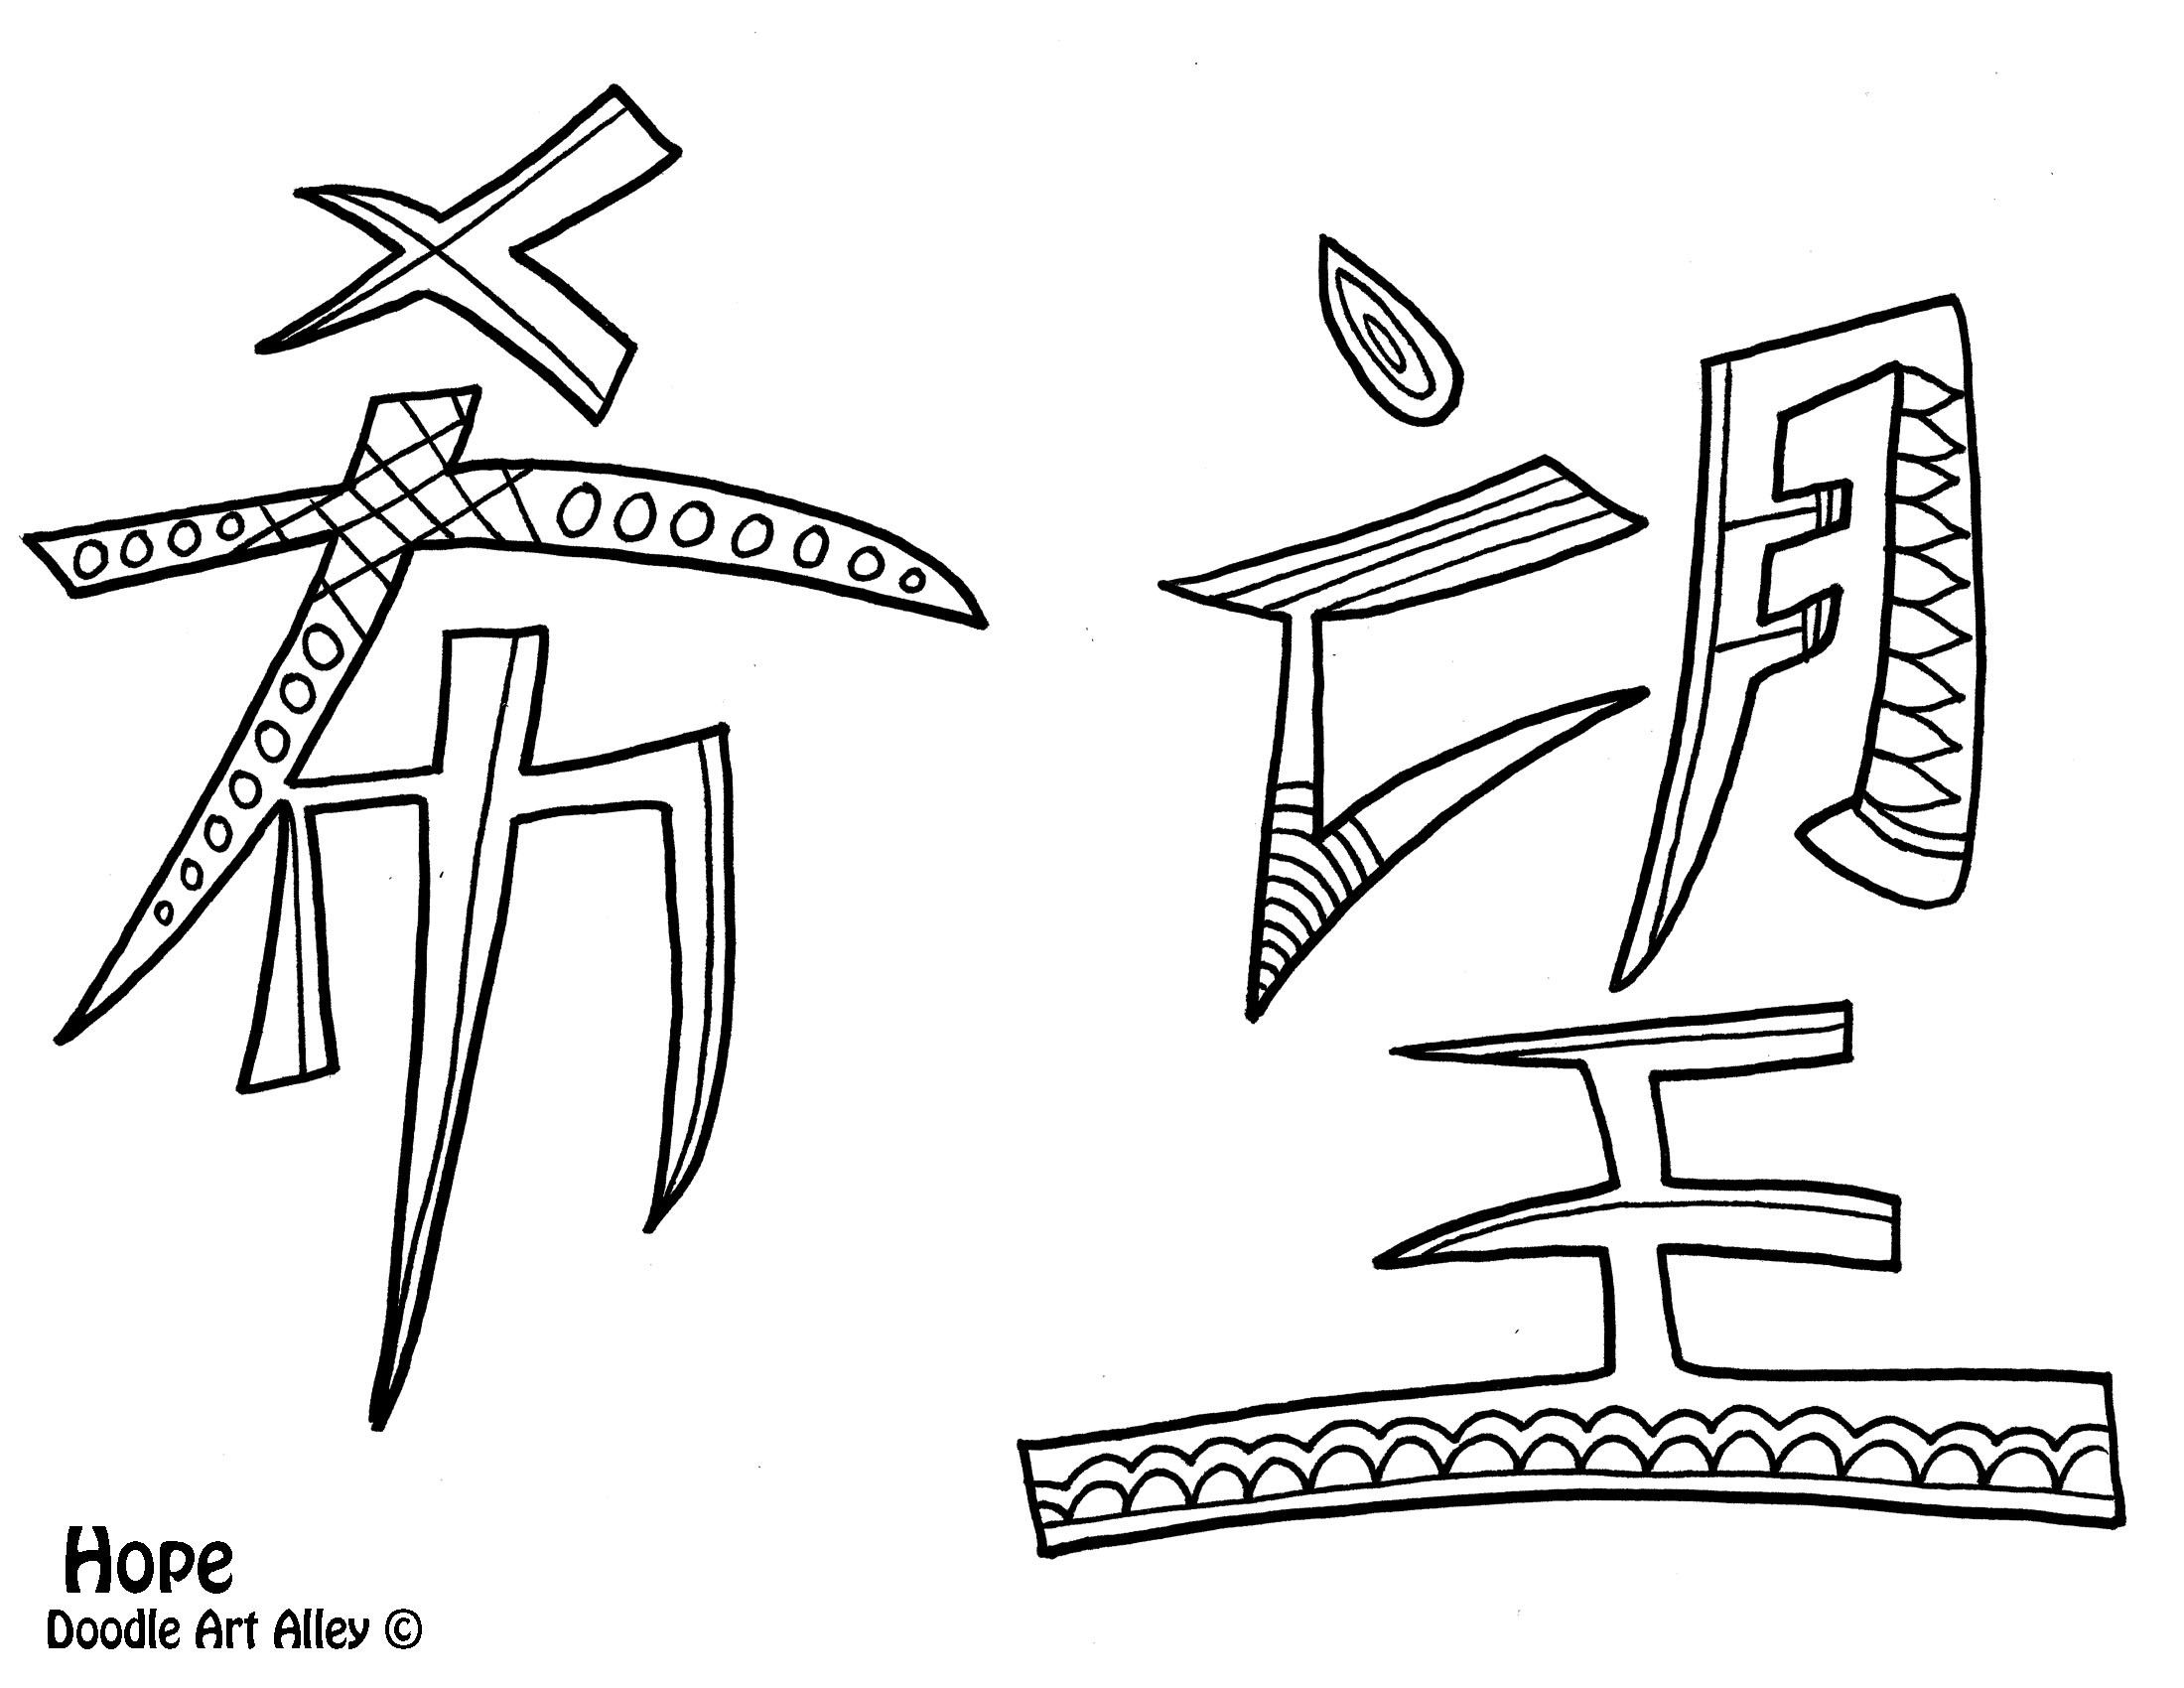 Free Printable Chinese Characters Coloring Pages From Doodle Art Alley